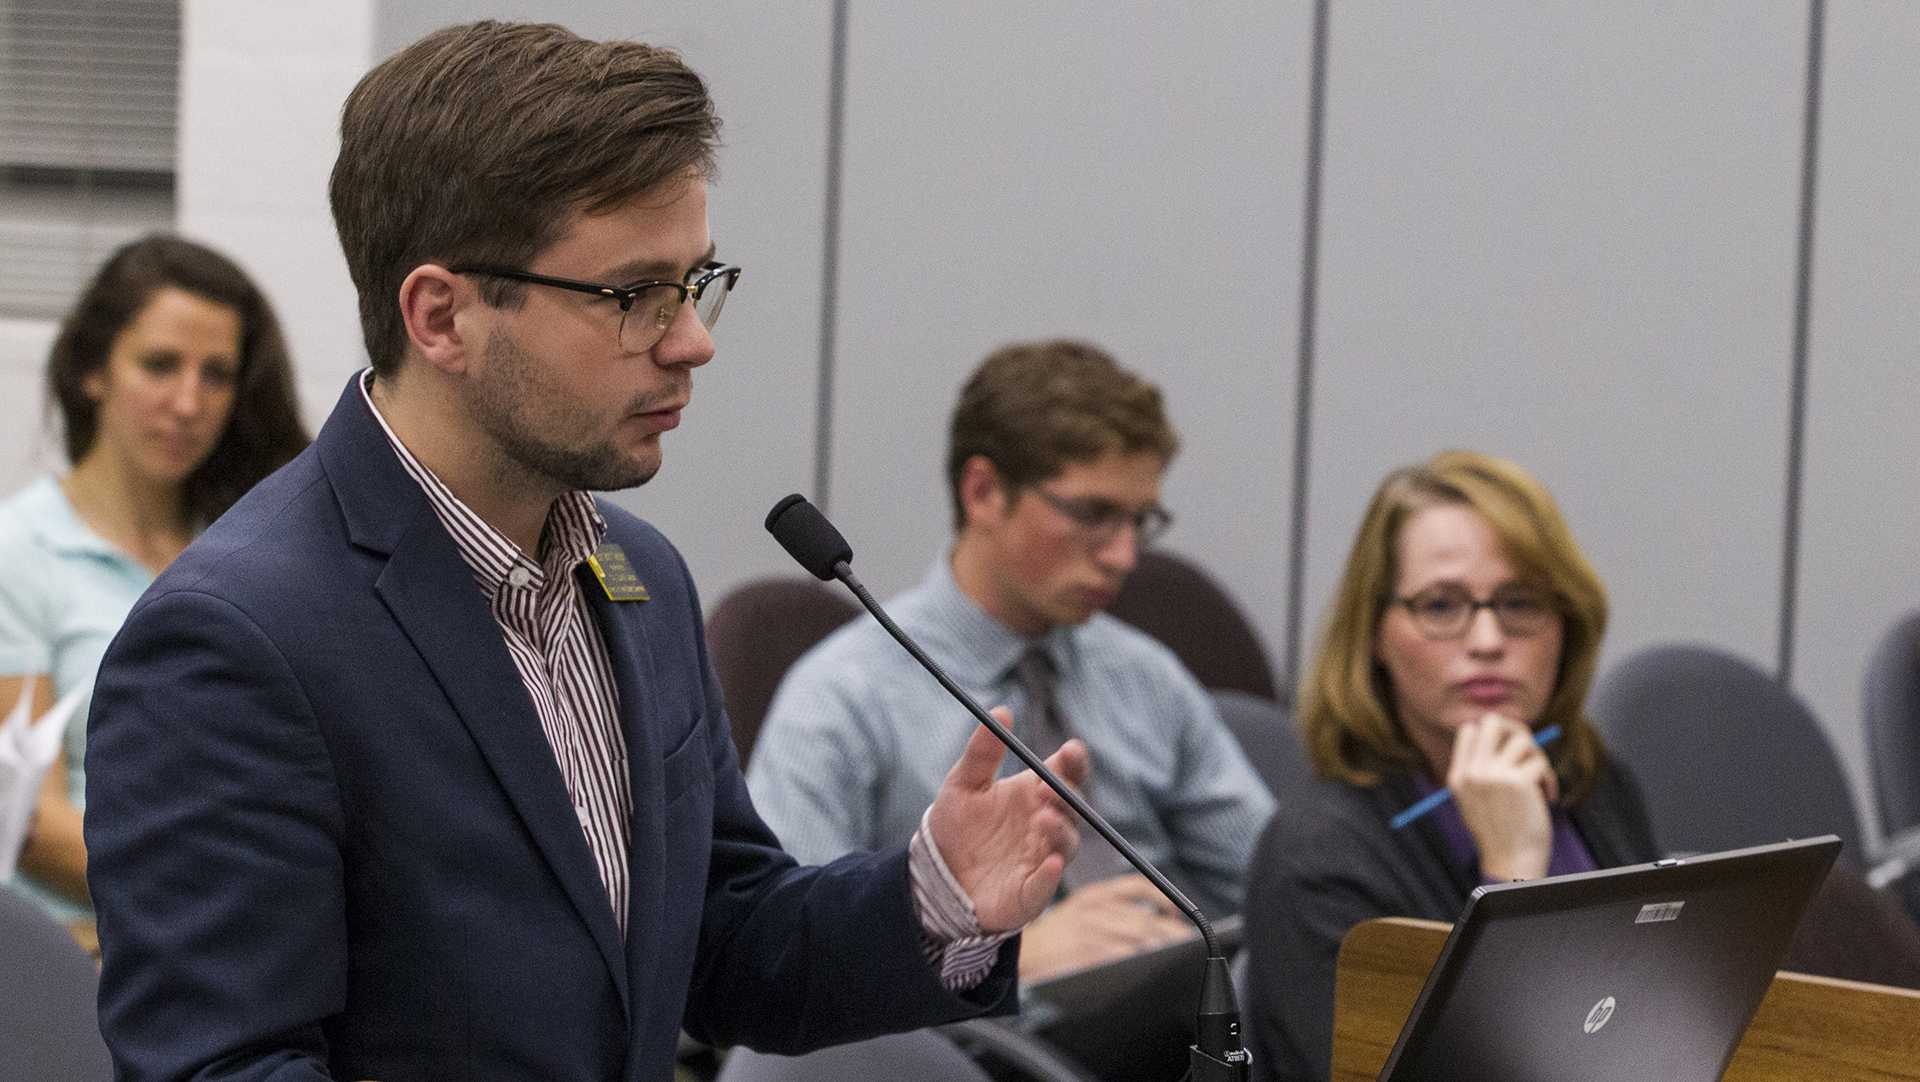 UISG city Council Liaison Benjamin Nelson addresses the city council during a meeting on Tuesday, Oct. 2, 2017. the council unanimously passed a measure making rent abatement easier in situations where landlords violate housing code. (Nick Rohlman/The Daily Iowan)